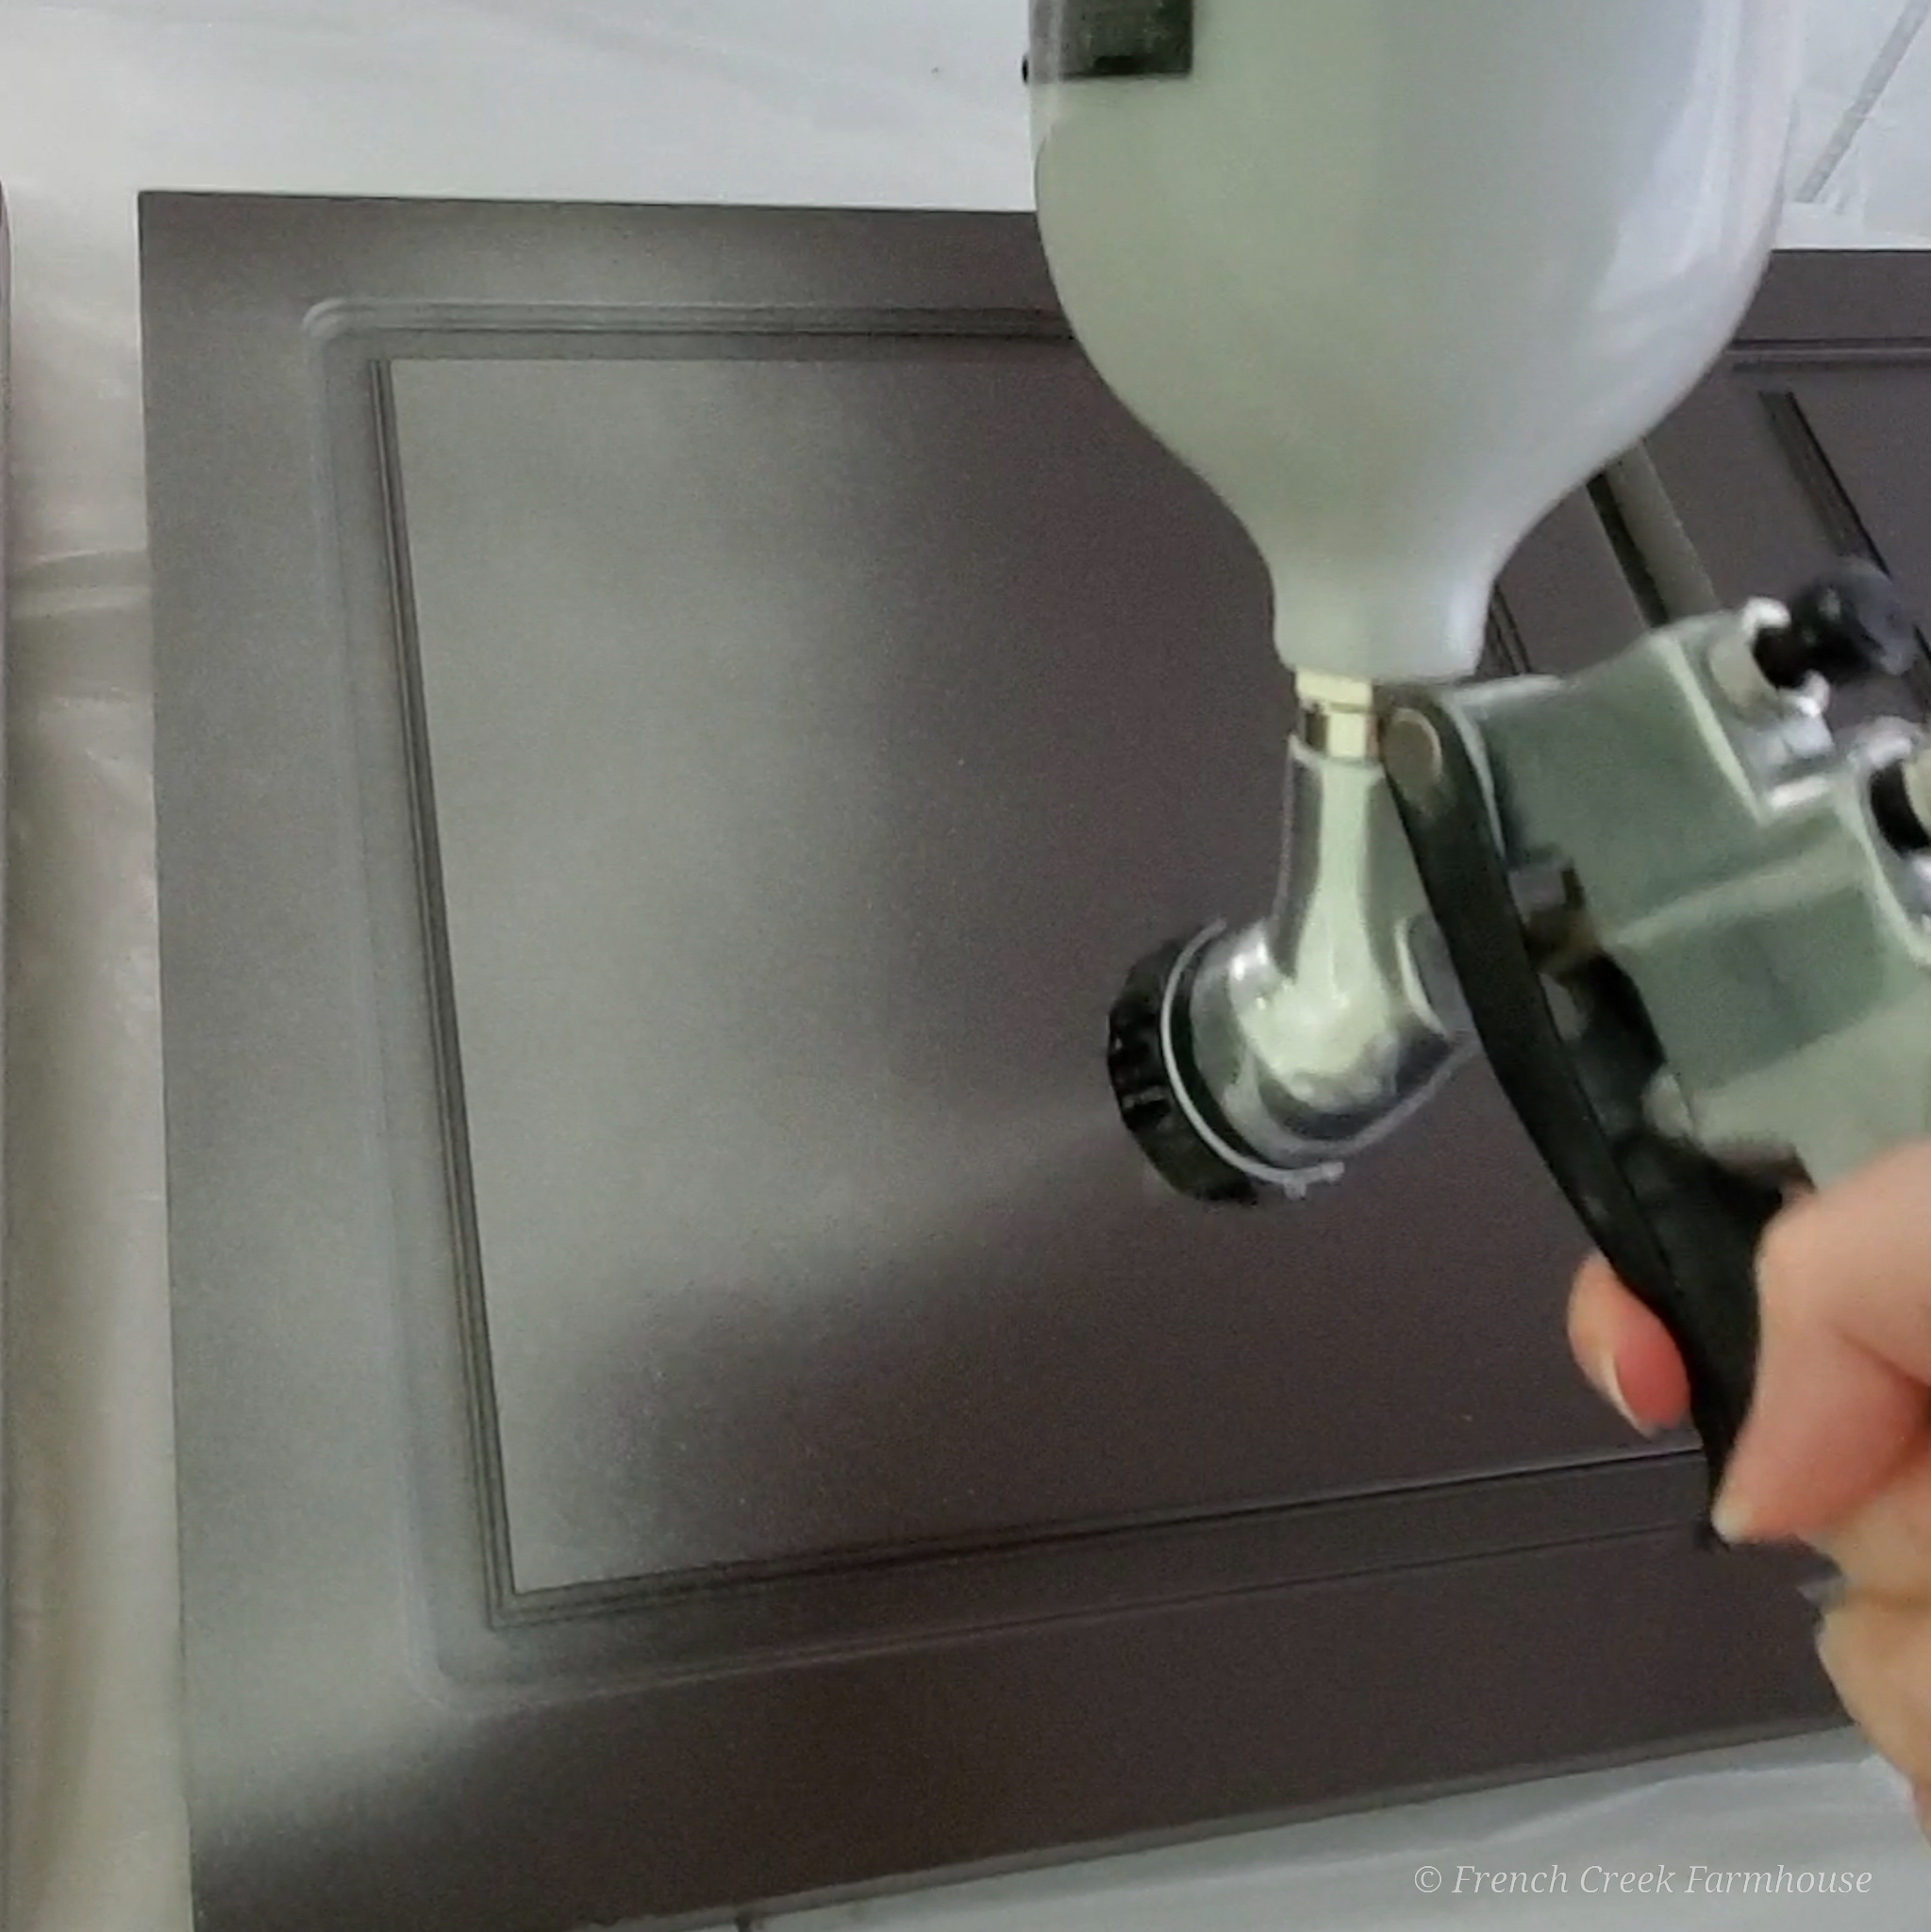 Using an HVLP gravity fed spray gun makes a smooth and professional finish